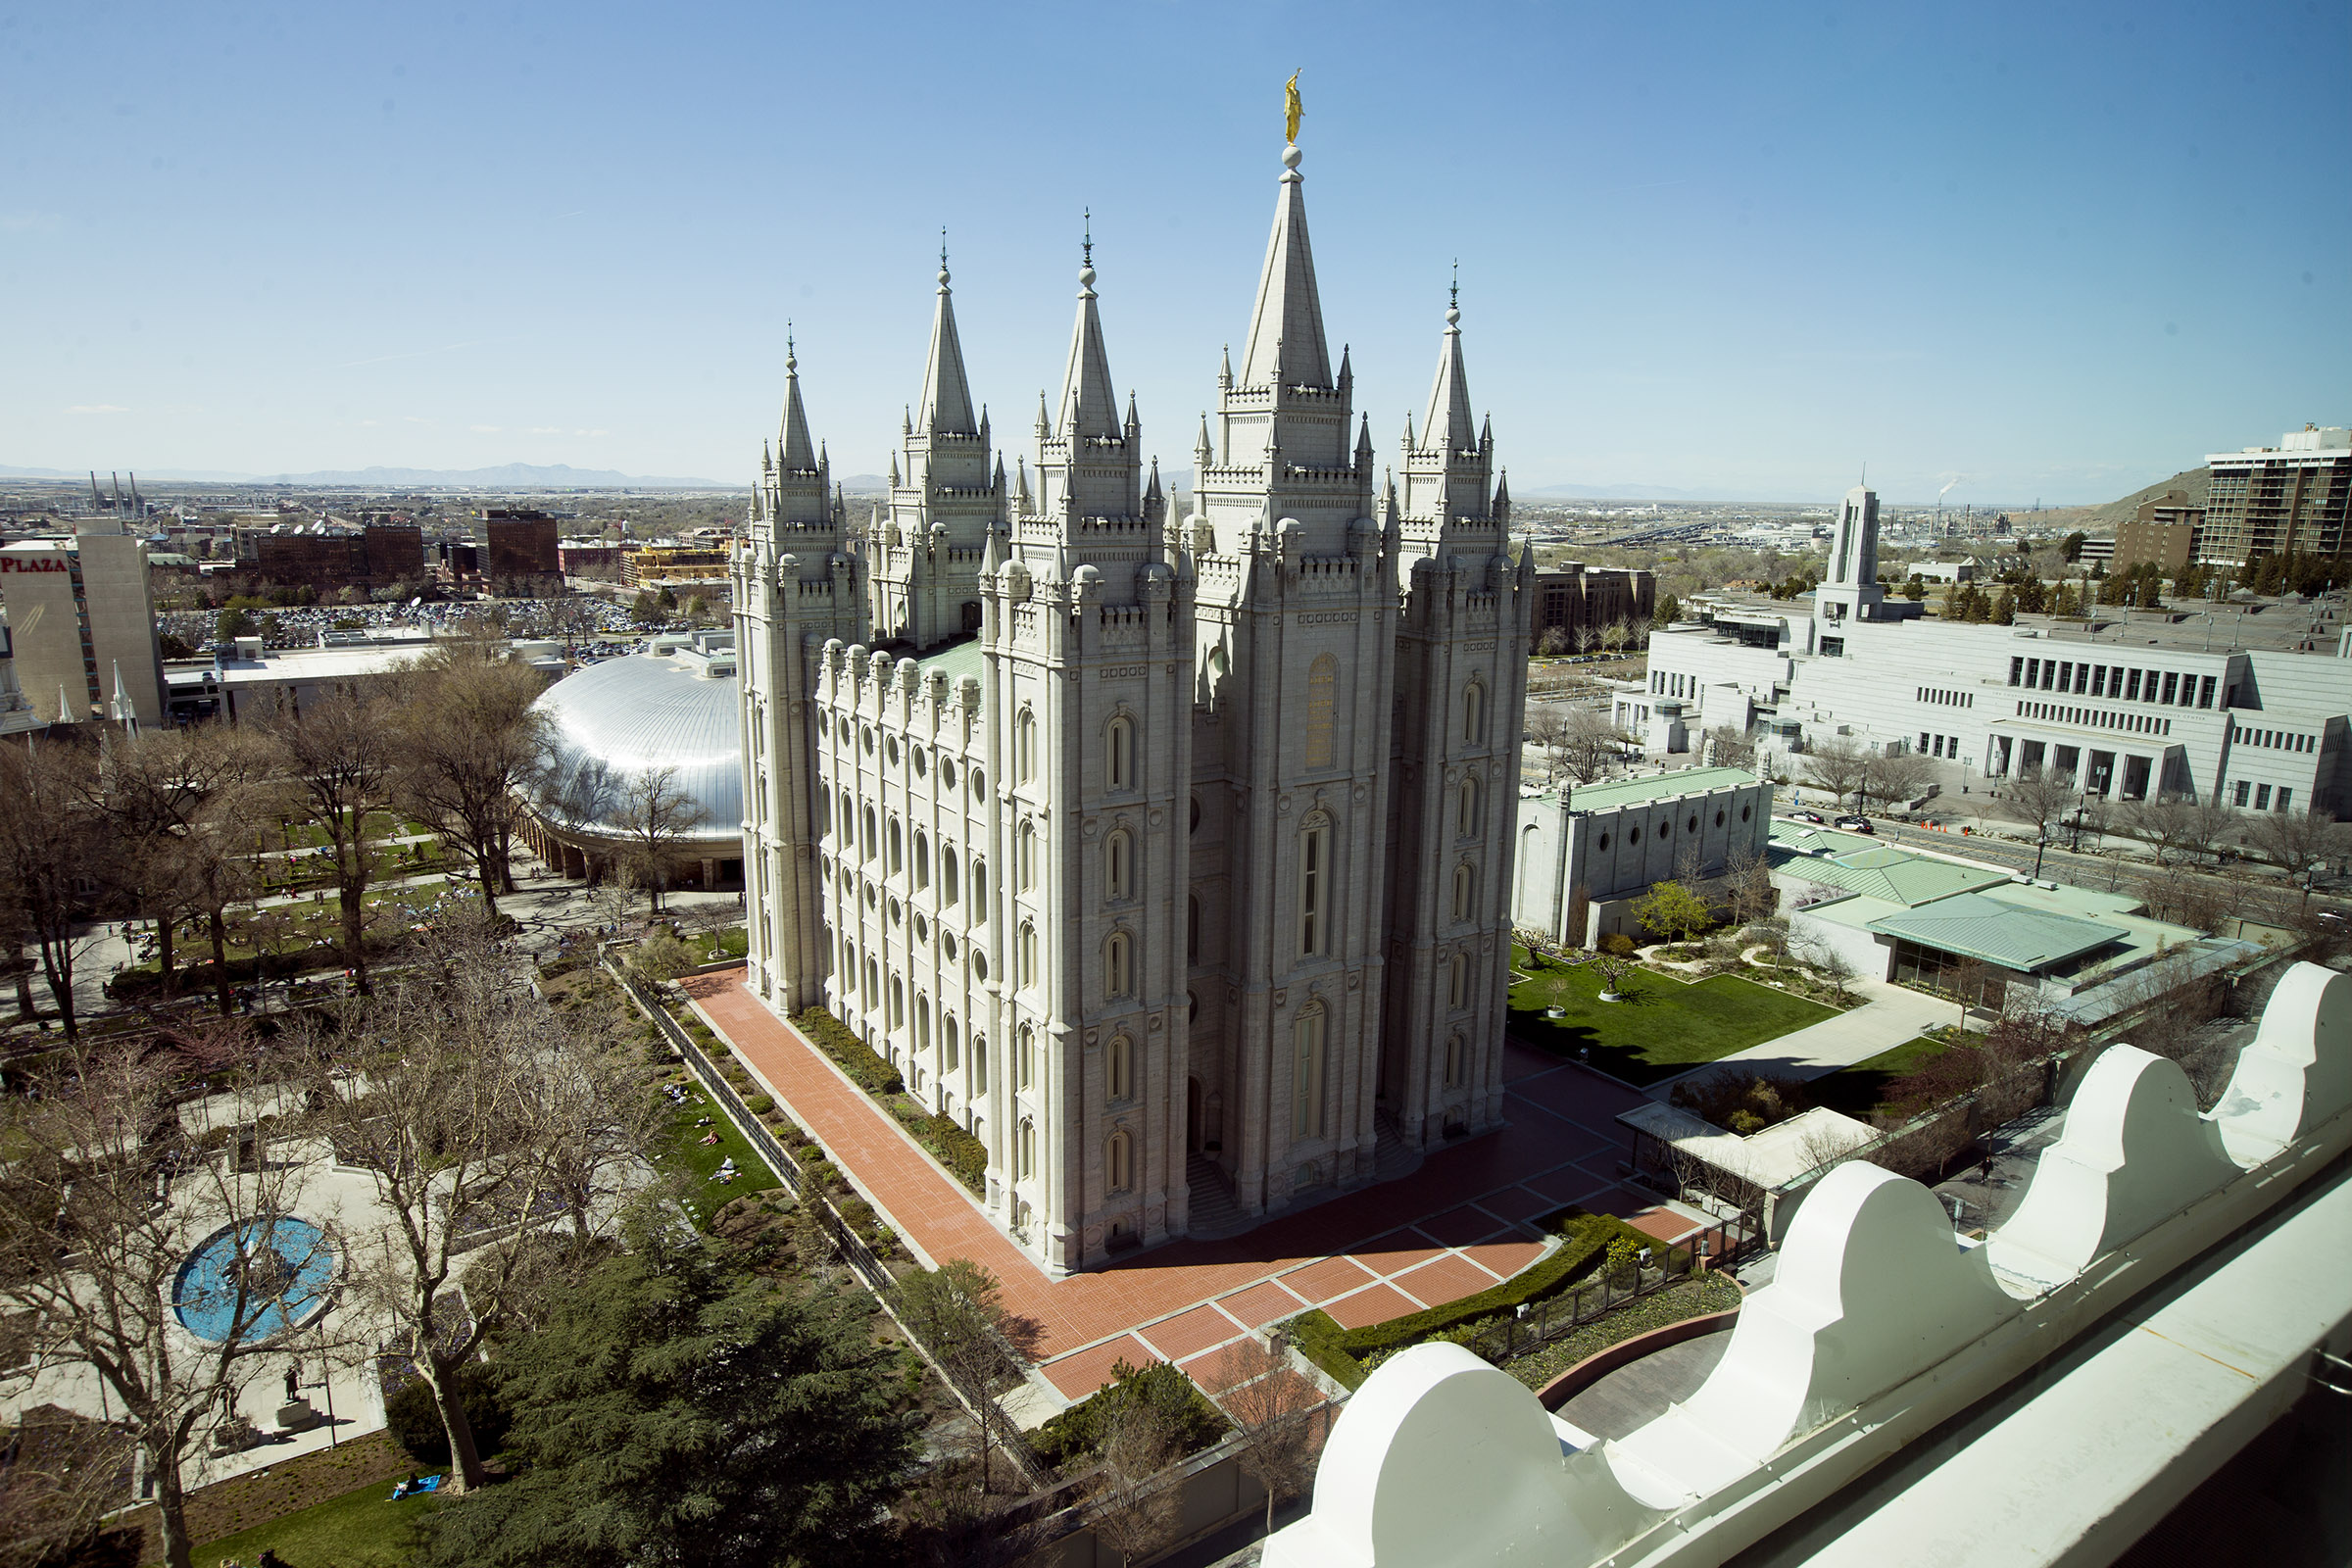 The Salt Lake Temple during the 188th Annual General Conference of The Church of Jesus Christ of Latter-day Saints in Salt Lake City on Sunday, April 1, 2018.